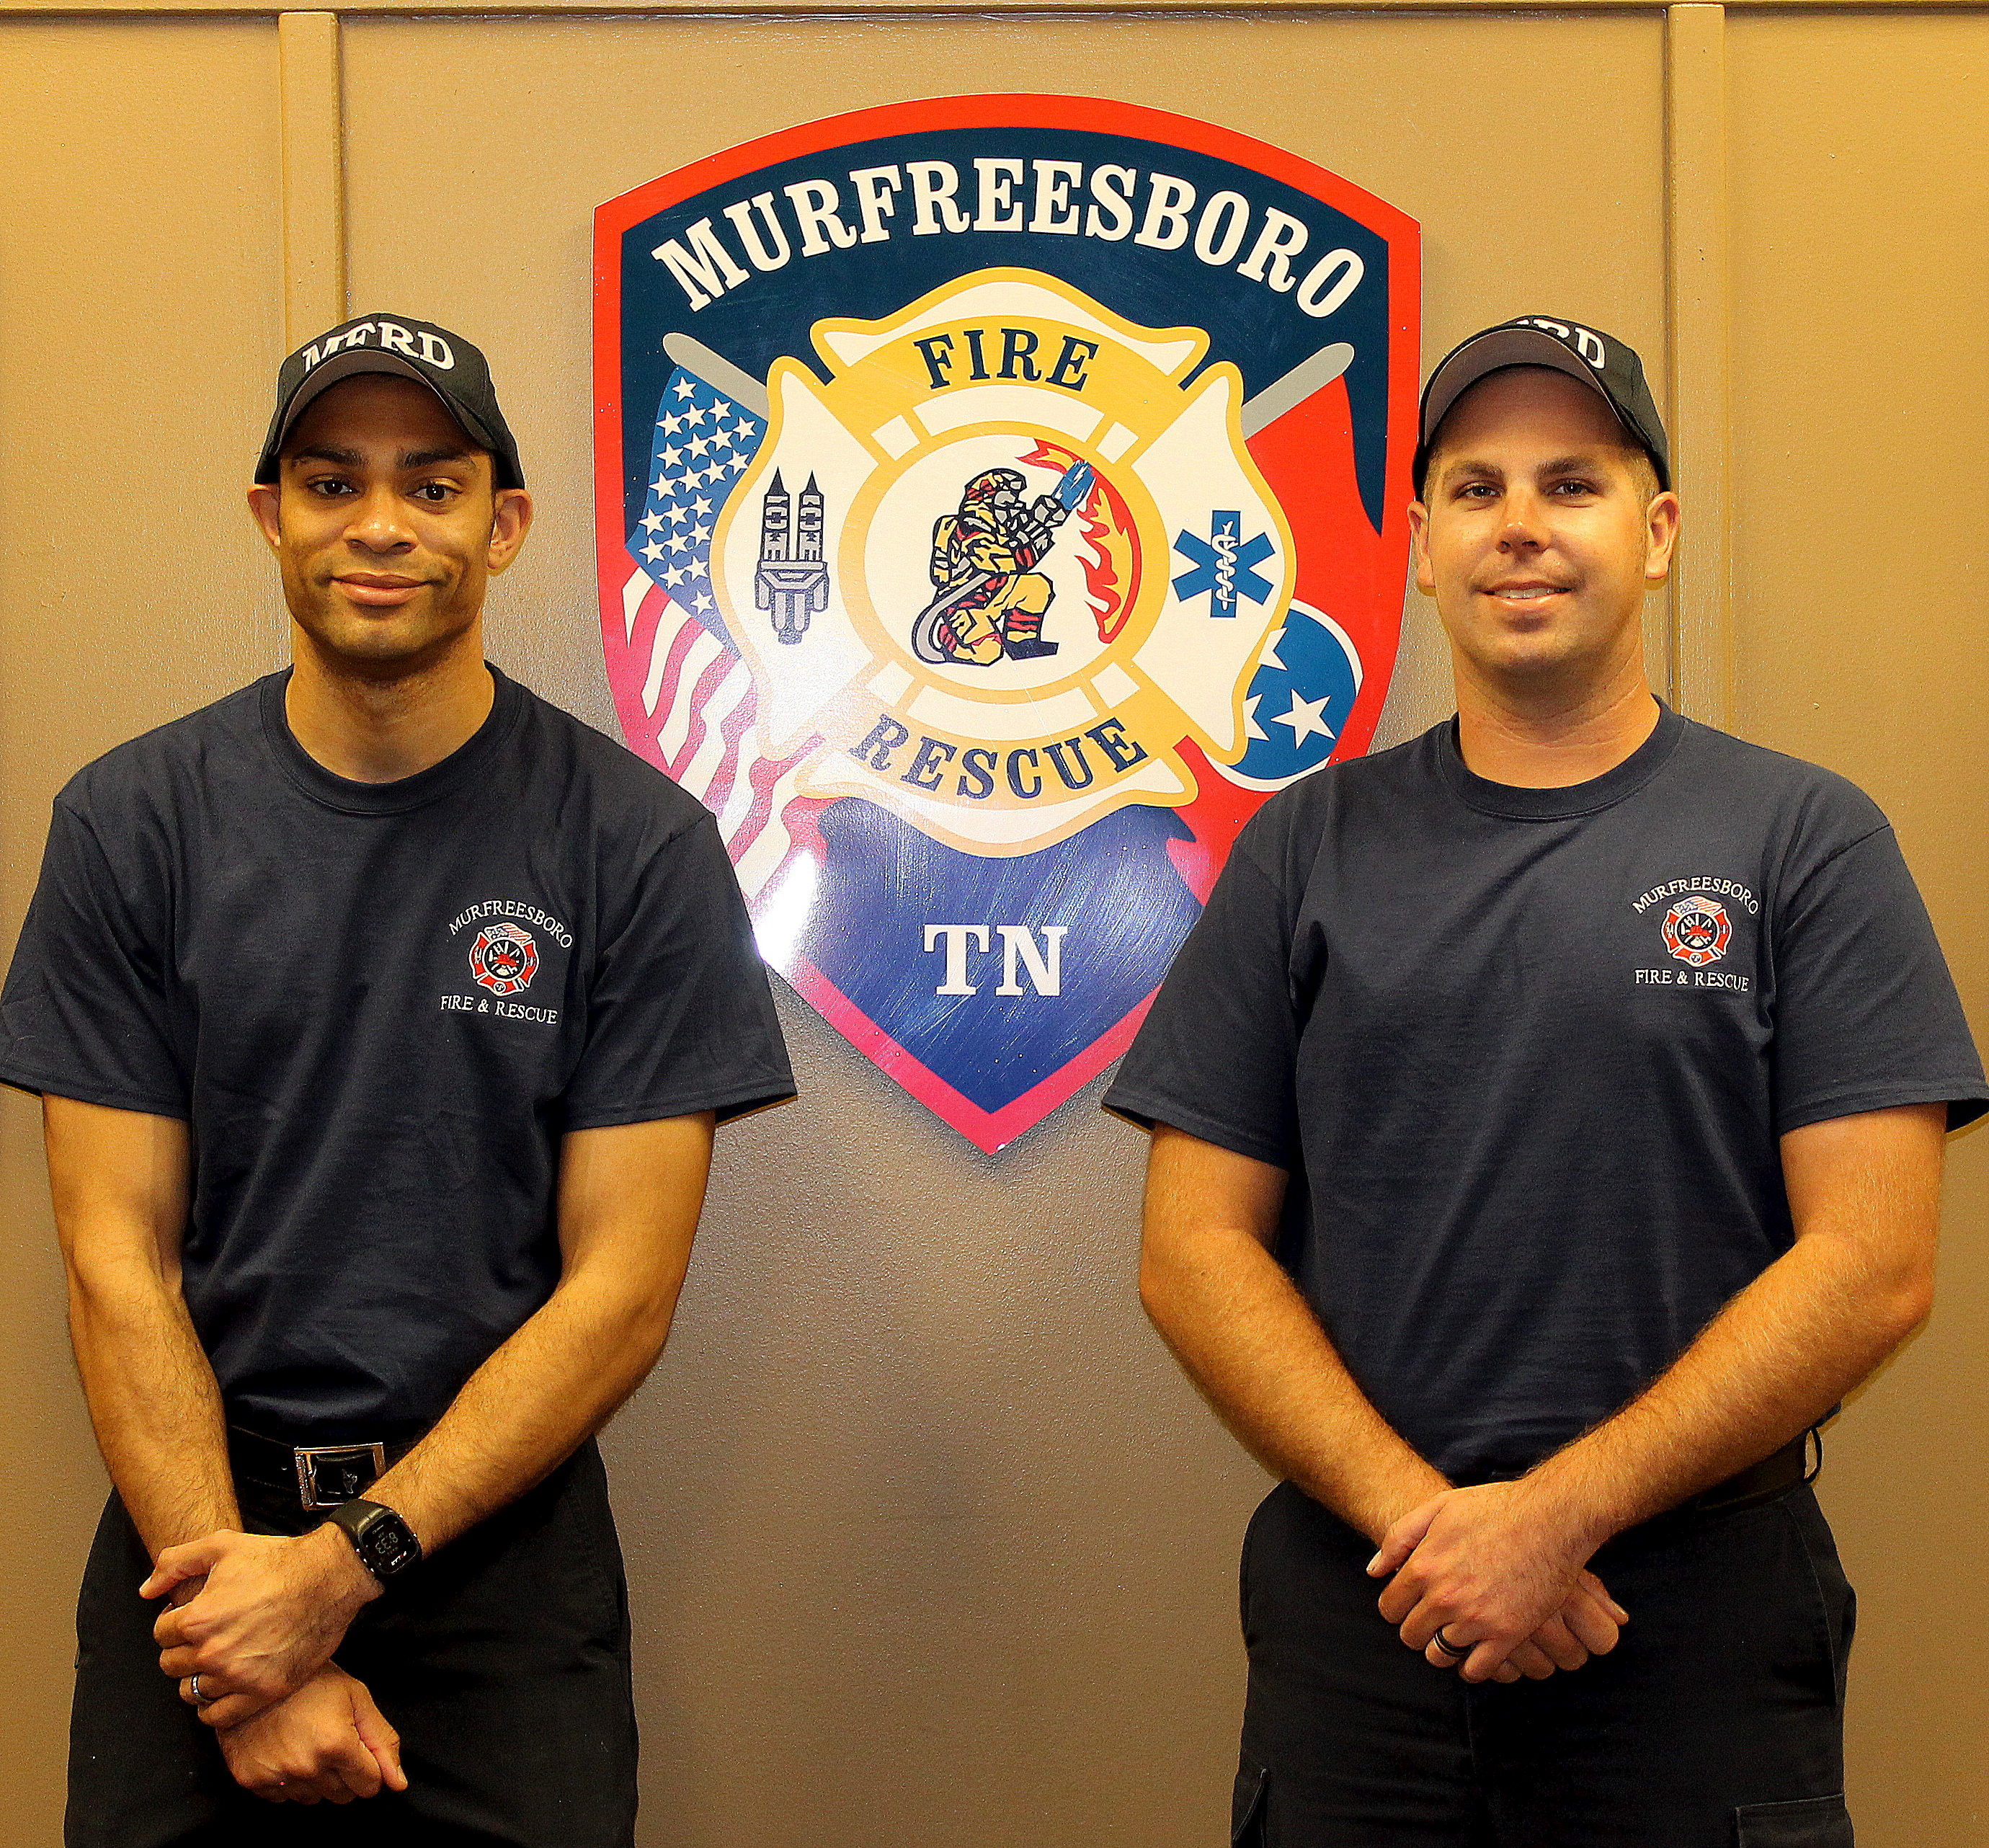 The Murfreesboro Fire and Rescue Department has Two New Employees